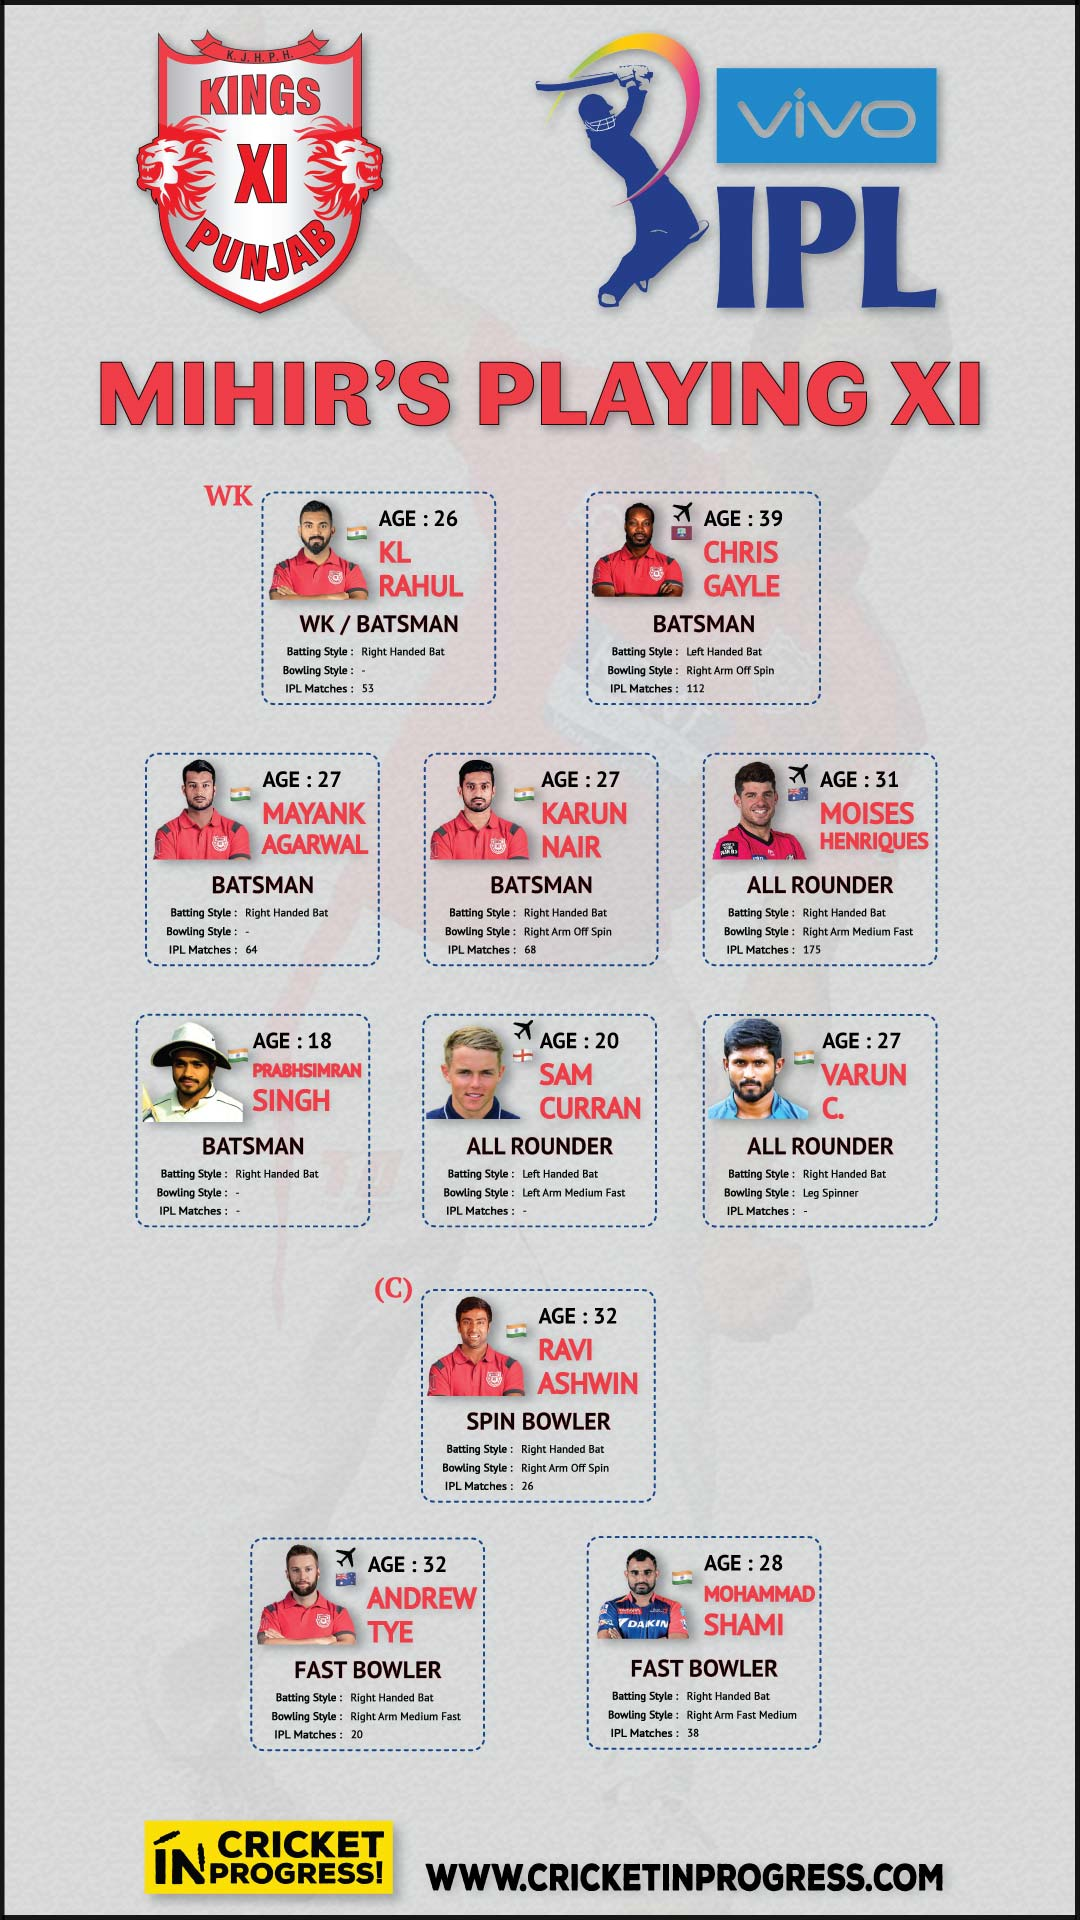 IPL 2019 KXIP Mihir Playing XI